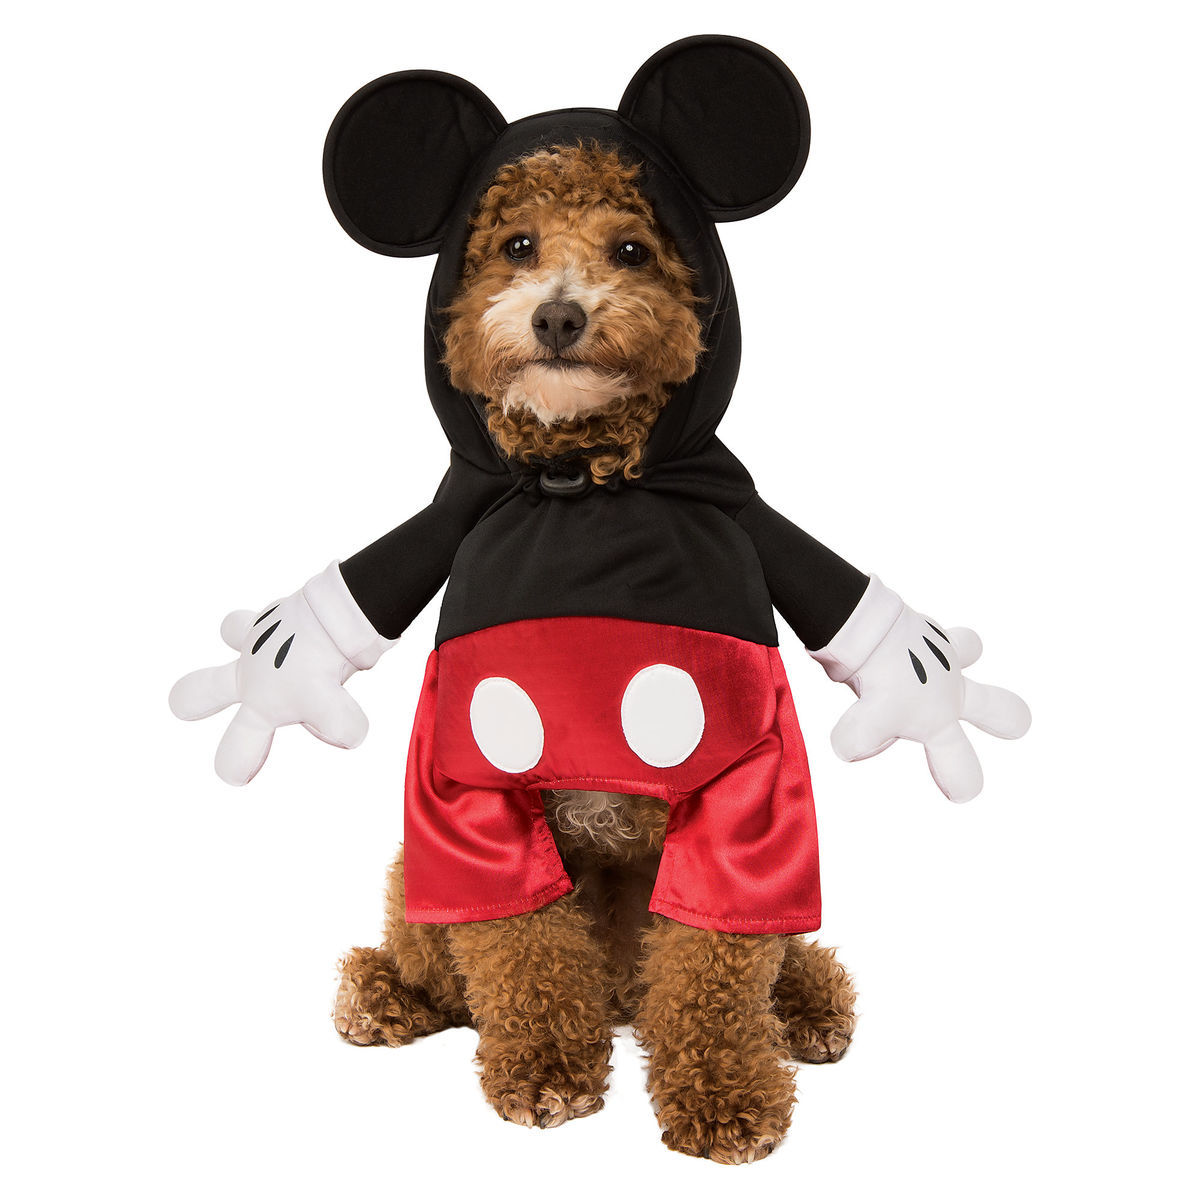 Pet Costumes With Disney Style! 4